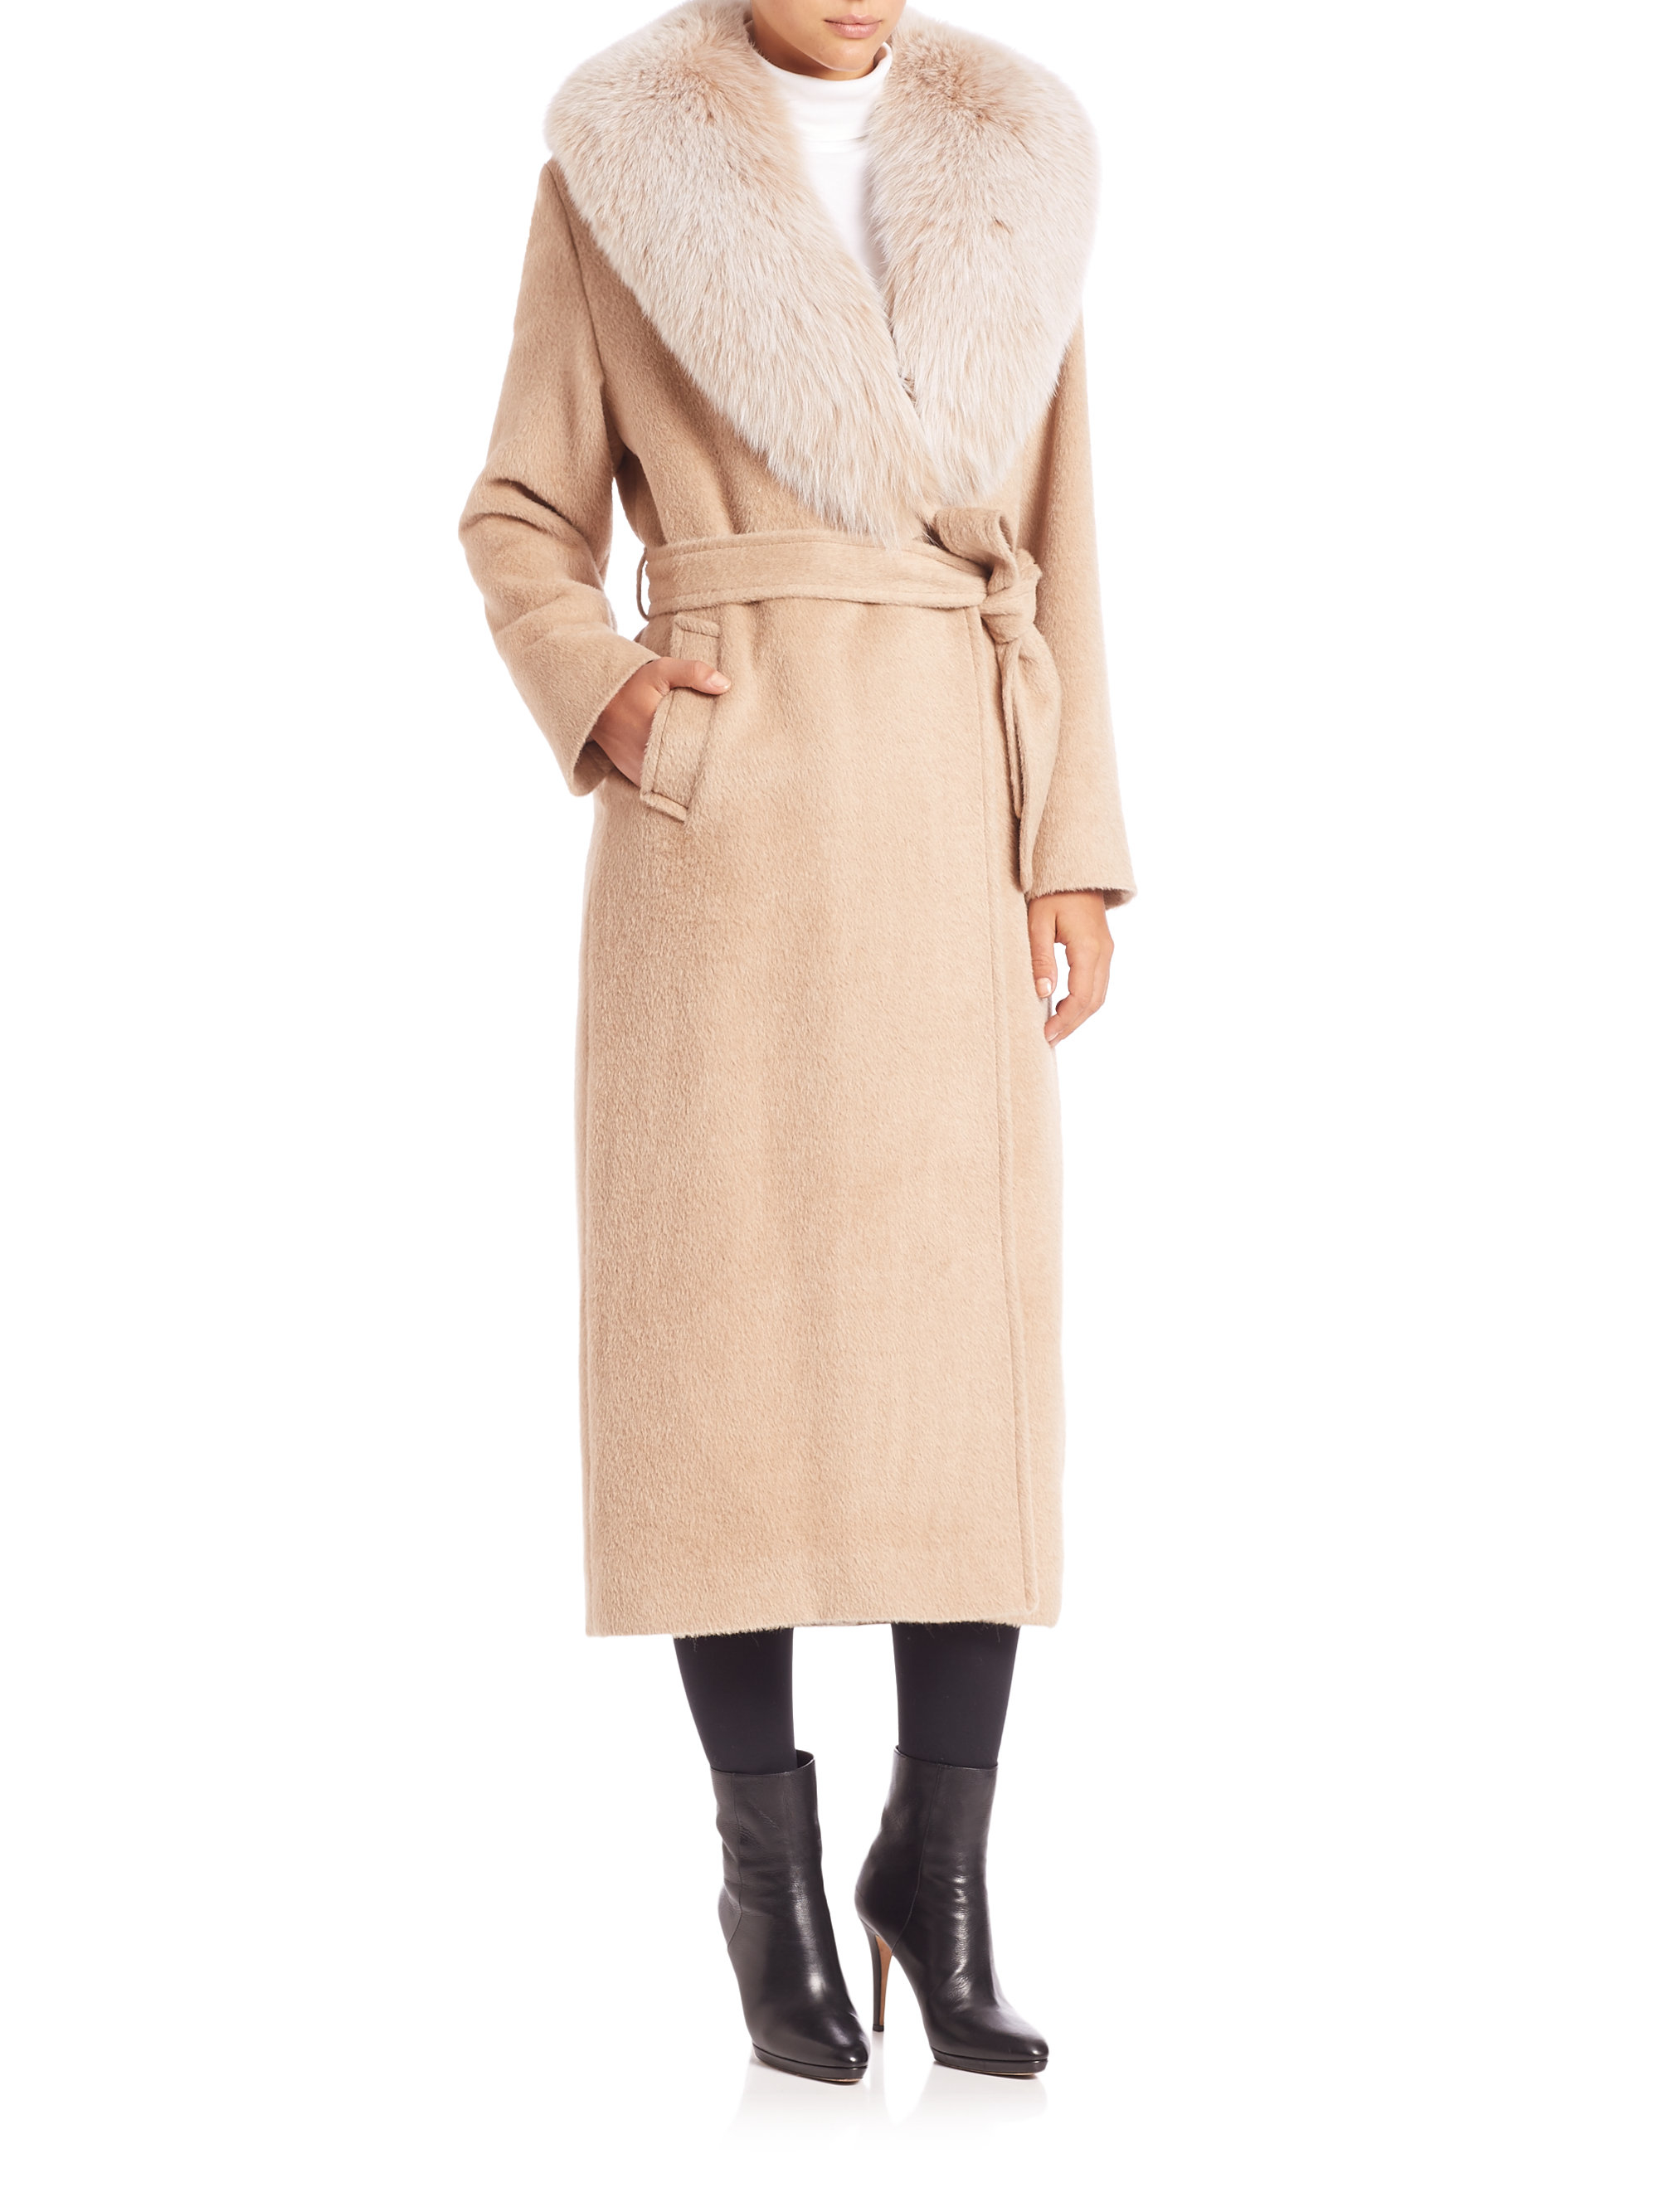 Sofia cashmere Long Fur-trimmed Wrap Coat in Natural | Lyst